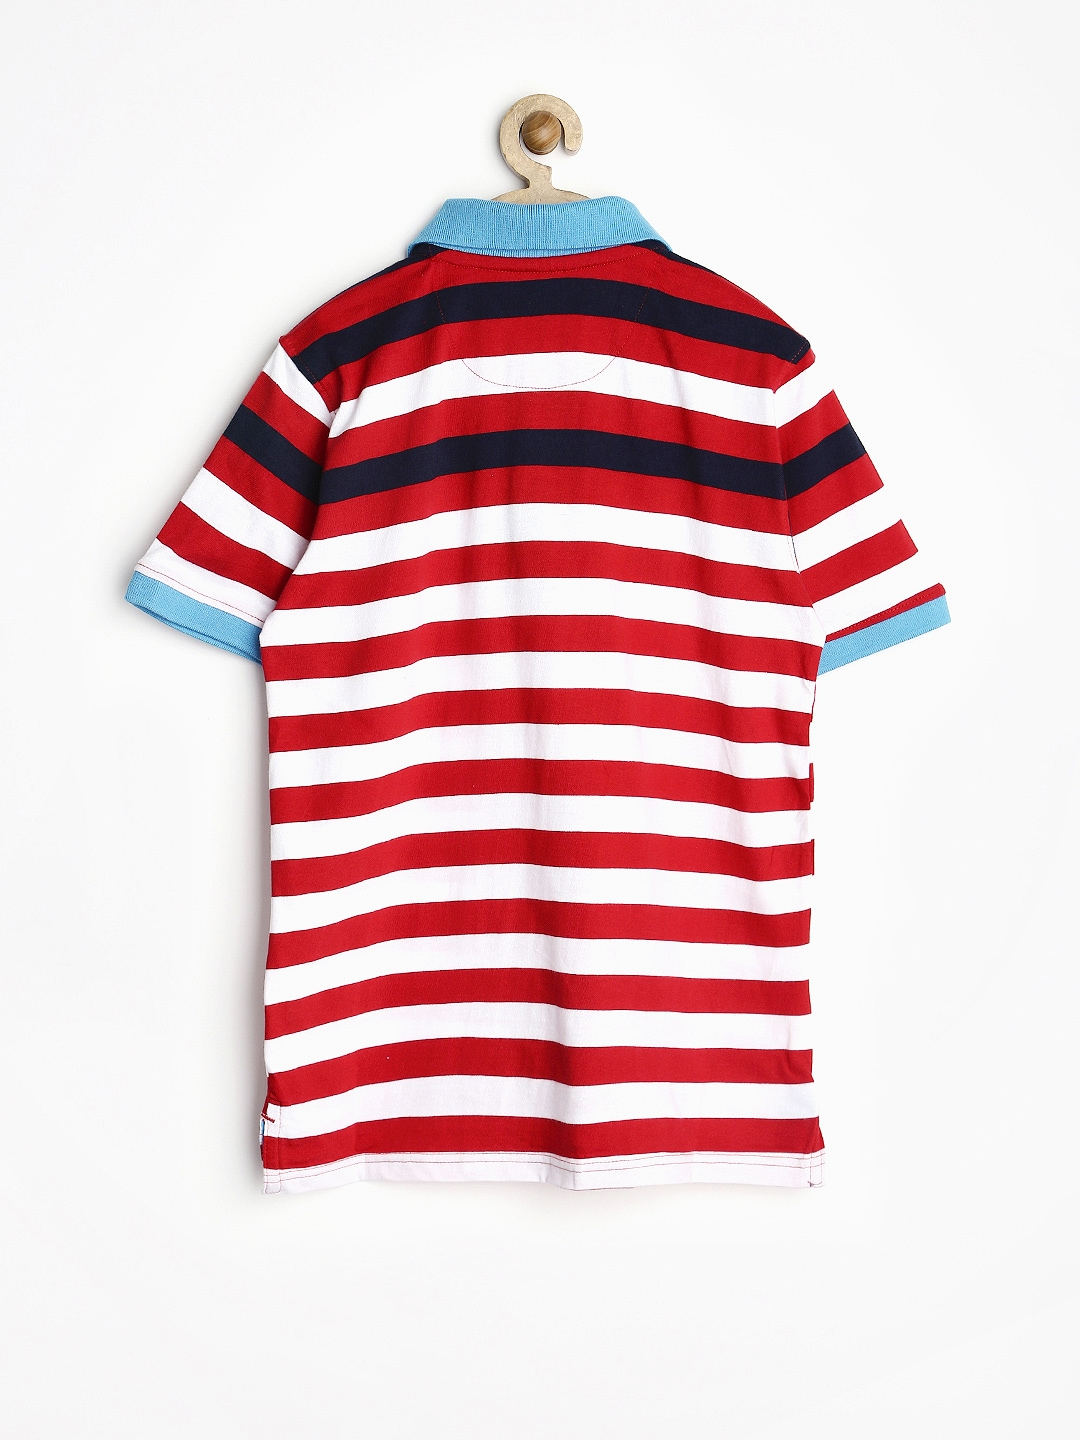 Myntra allen solly junior boys red white striped polo t for Red white striped polo shirt